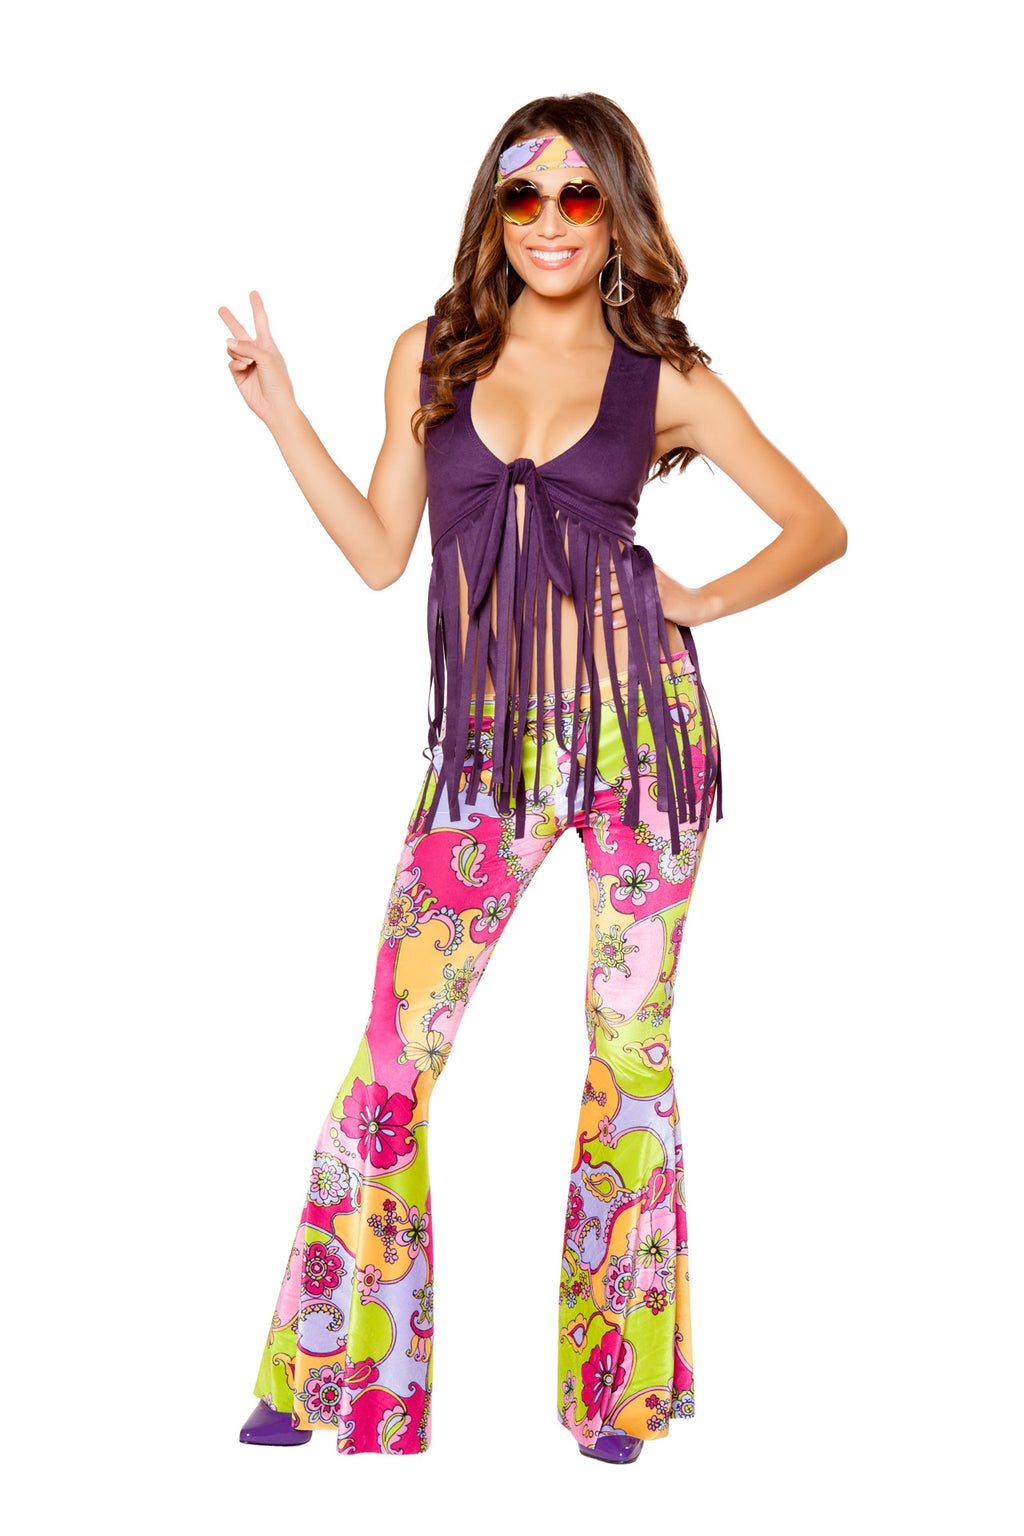 3-PC-Hippie-Purple-Fringe-Top-&-Paisley-Bellbottoms-w/-Headband-Party-Costume--